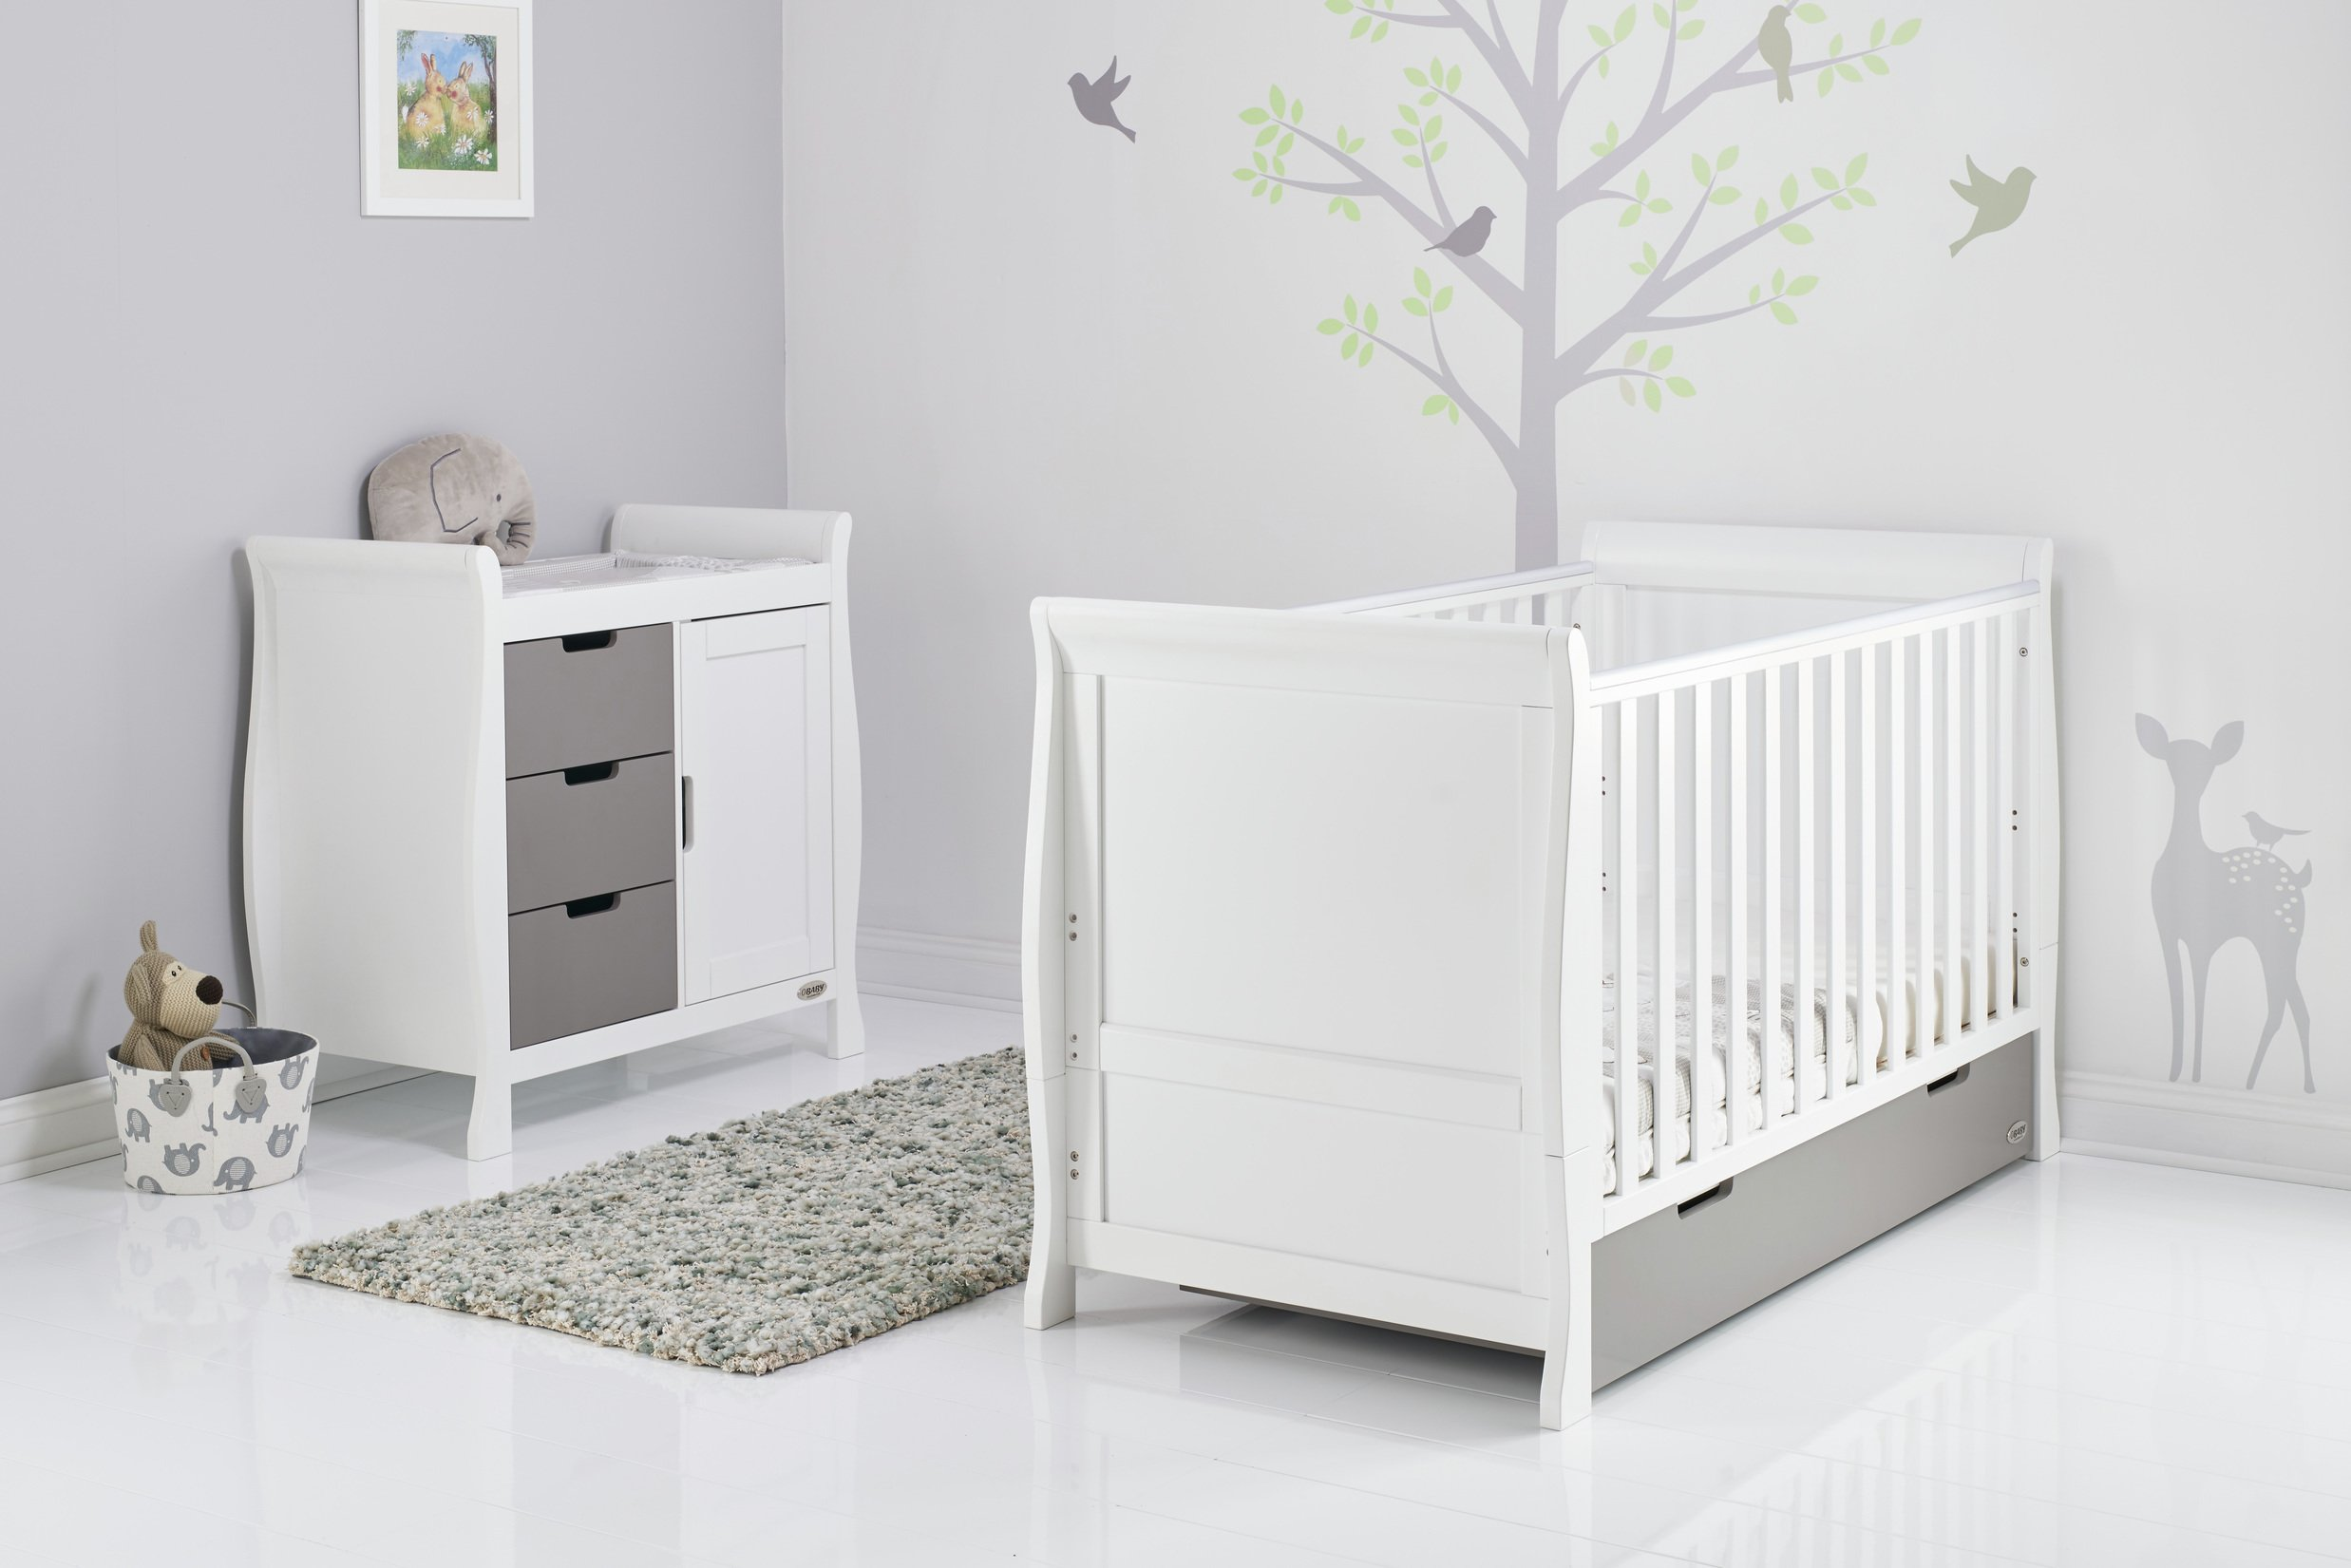 Obaby Stamford Sleigh 2 Piece Room Set - White & Taupe Grey